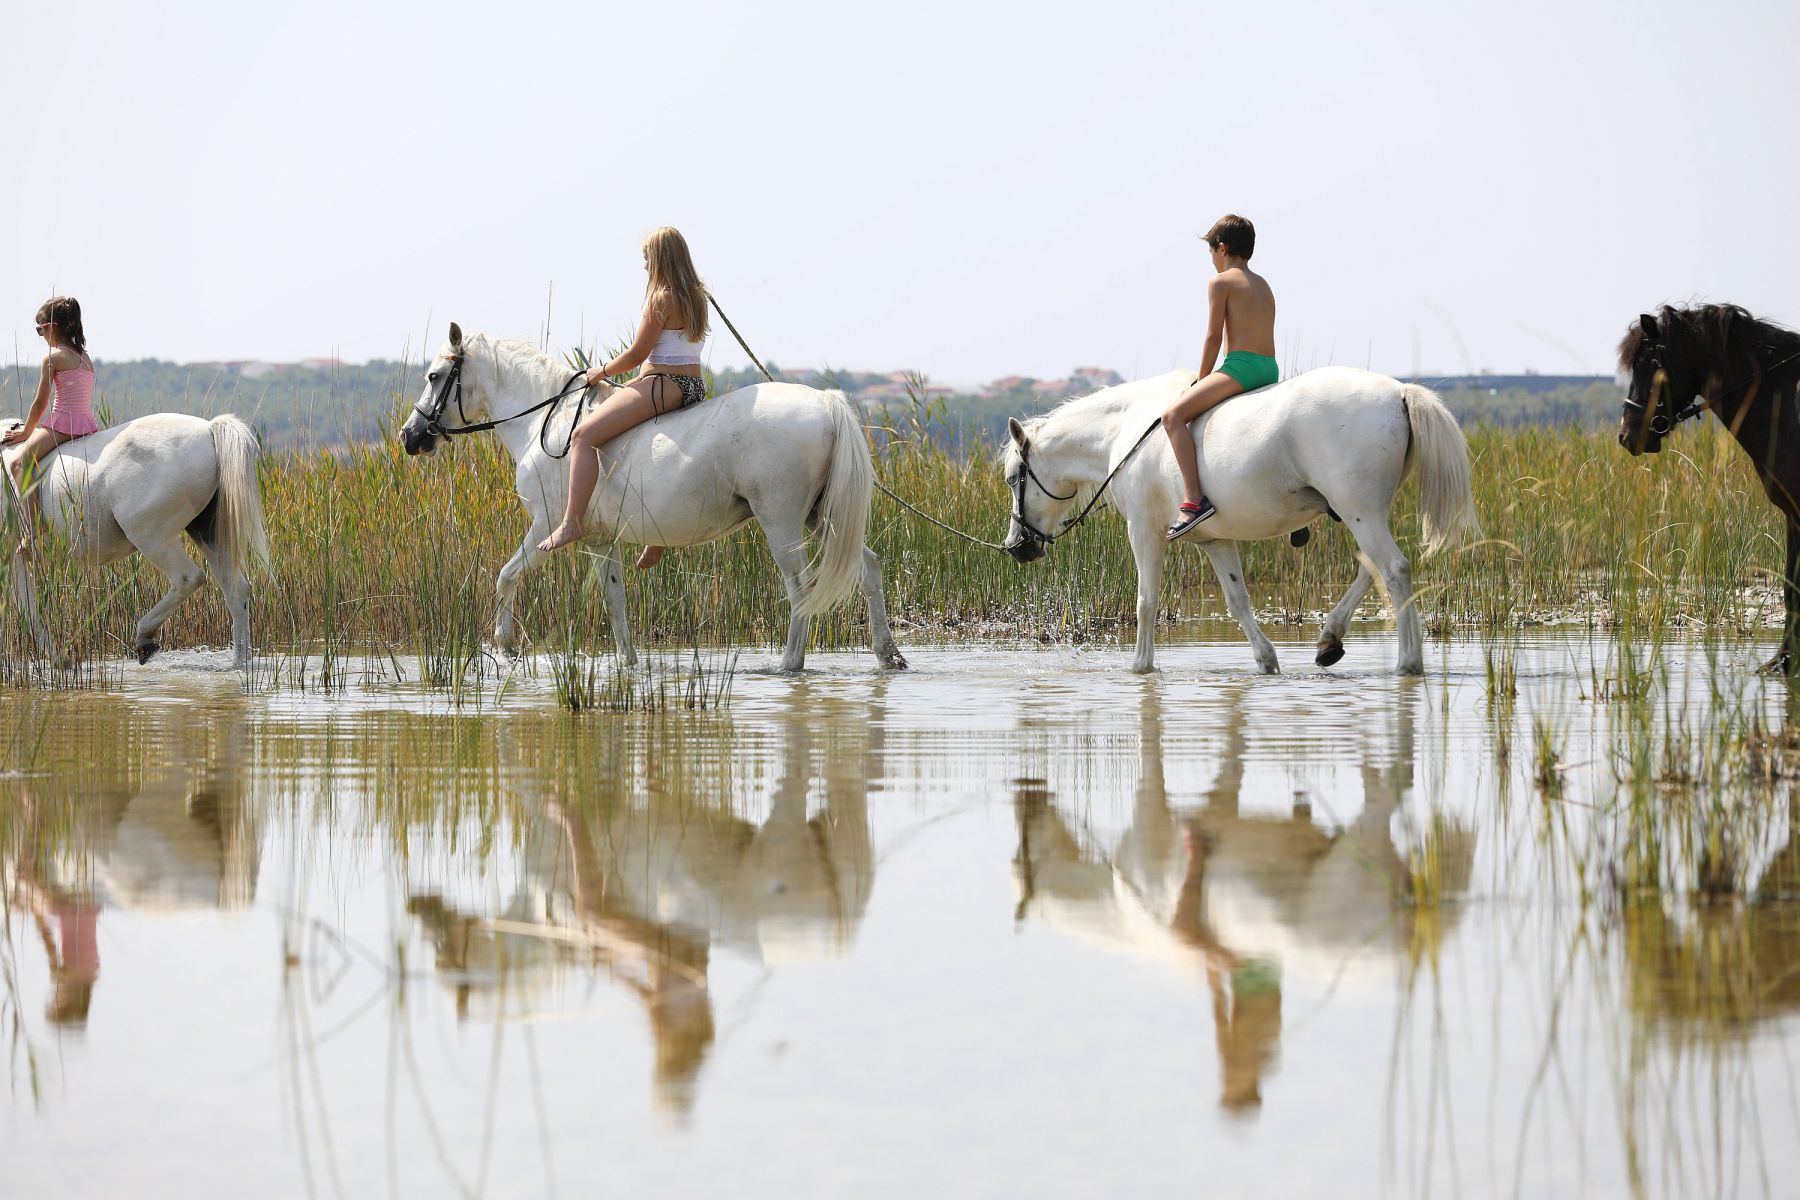 Lake Vrana, Croatia, Horse riding